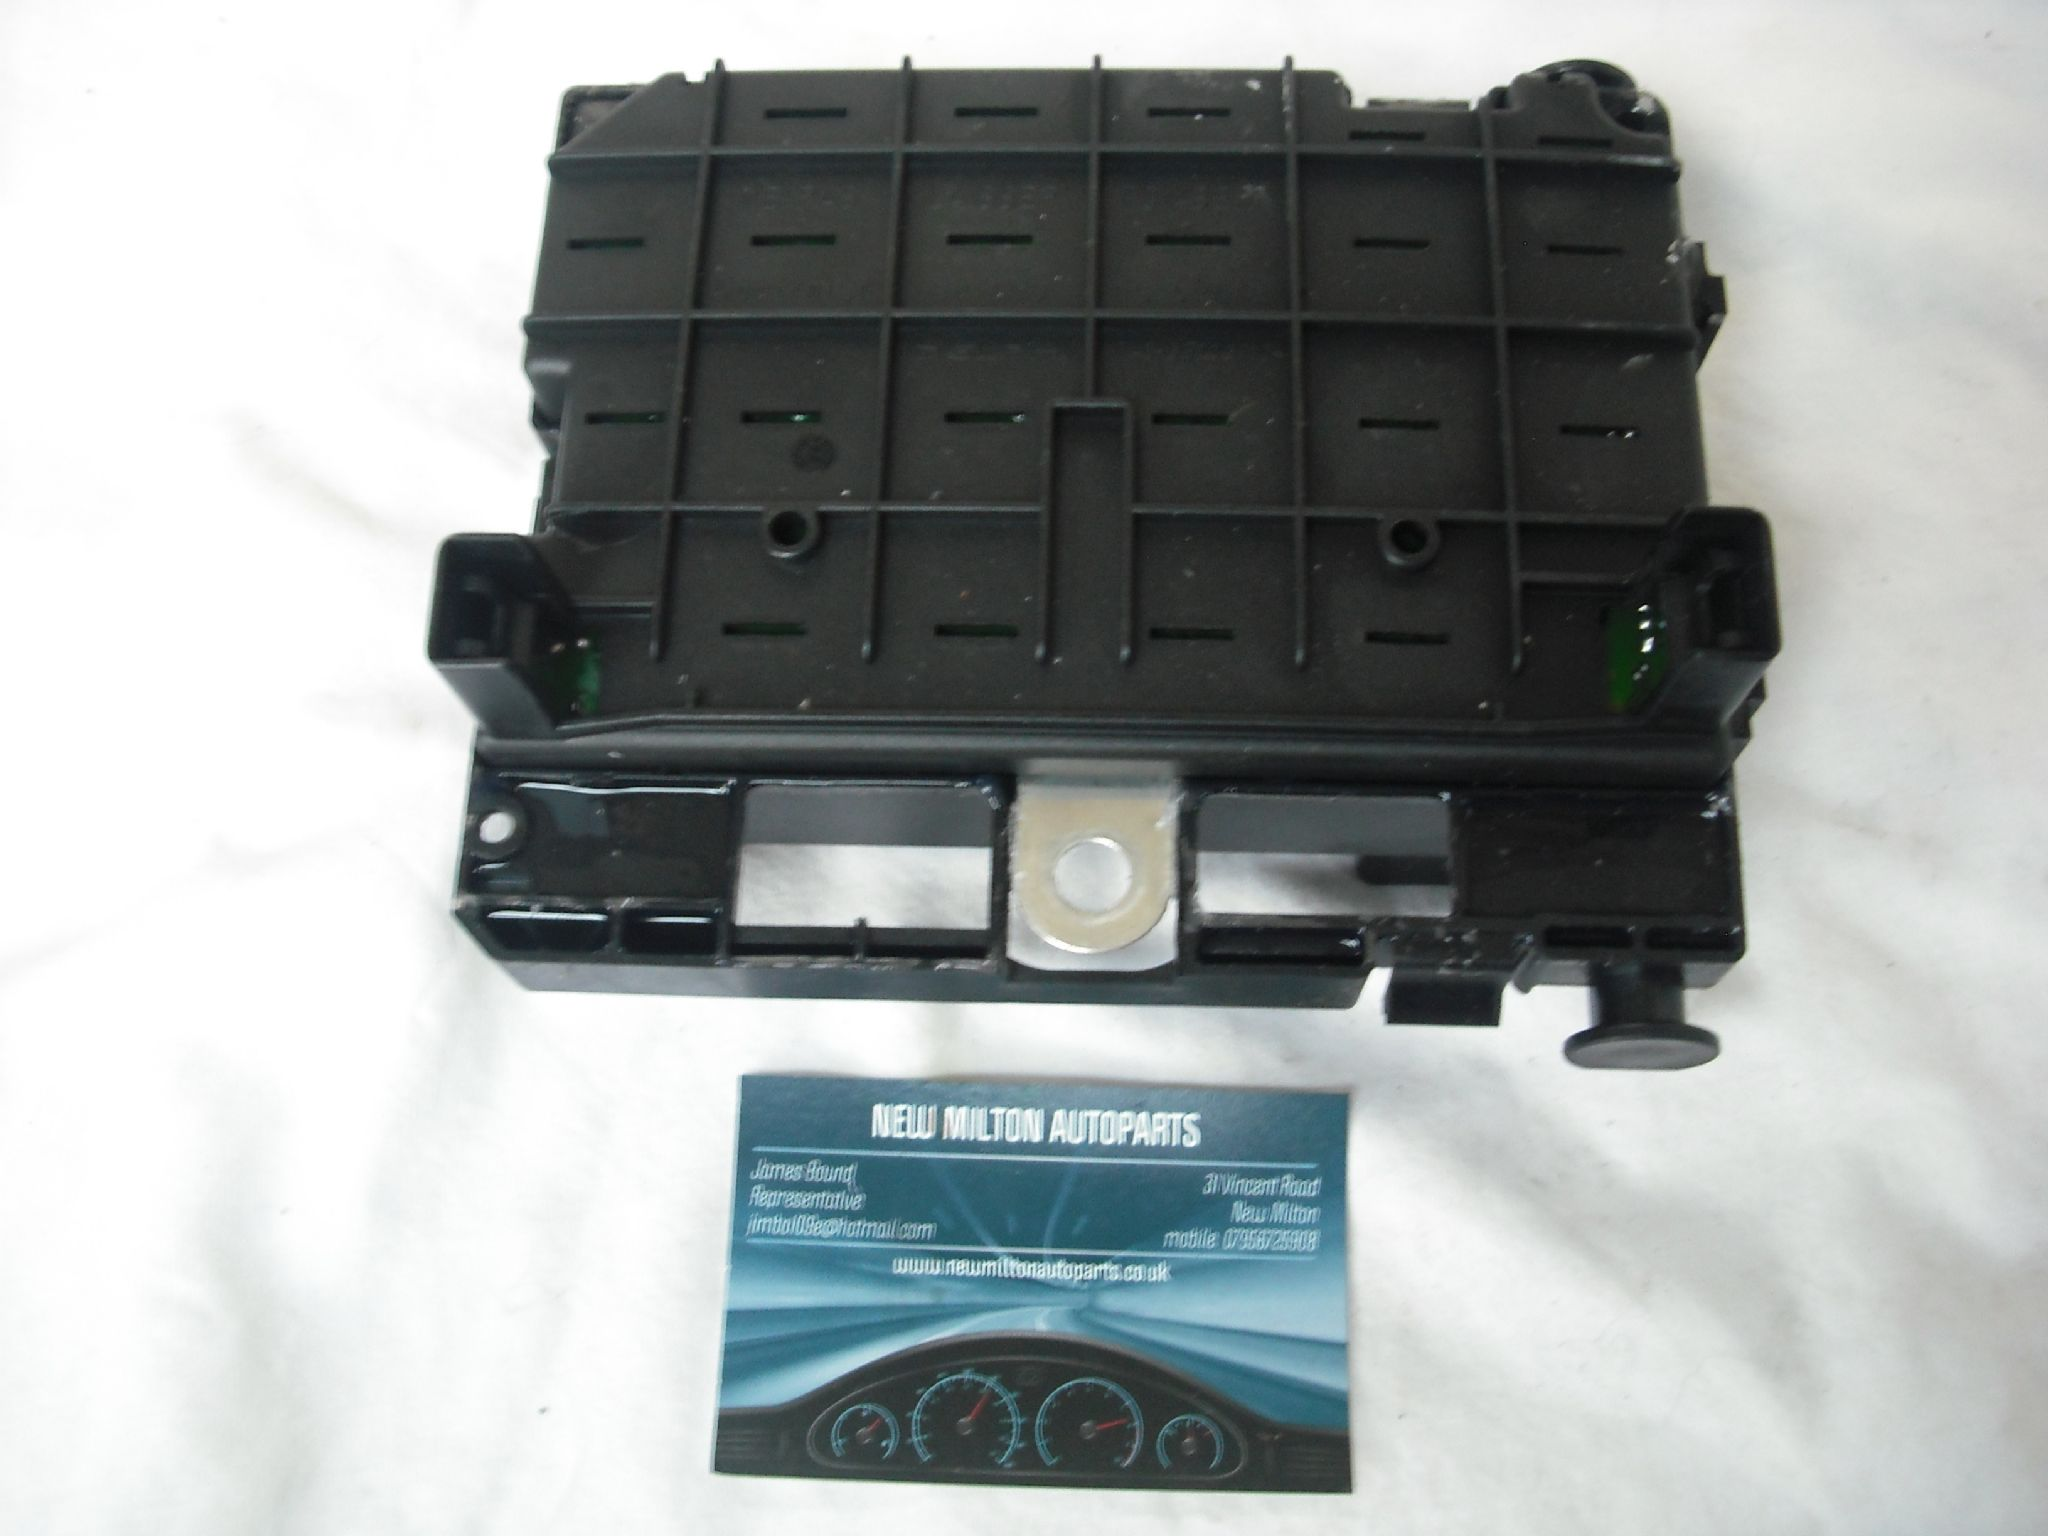 a genuine peugeot 307 1.4 1.6 2.0 engine bay fuse box control module 9646405180 bsm b2 delphi [2] 6701 p genuine peugeot 307 1 4 1 6 2 0 engine bay fuse box control module delphi fuse box at bayanpartner.co